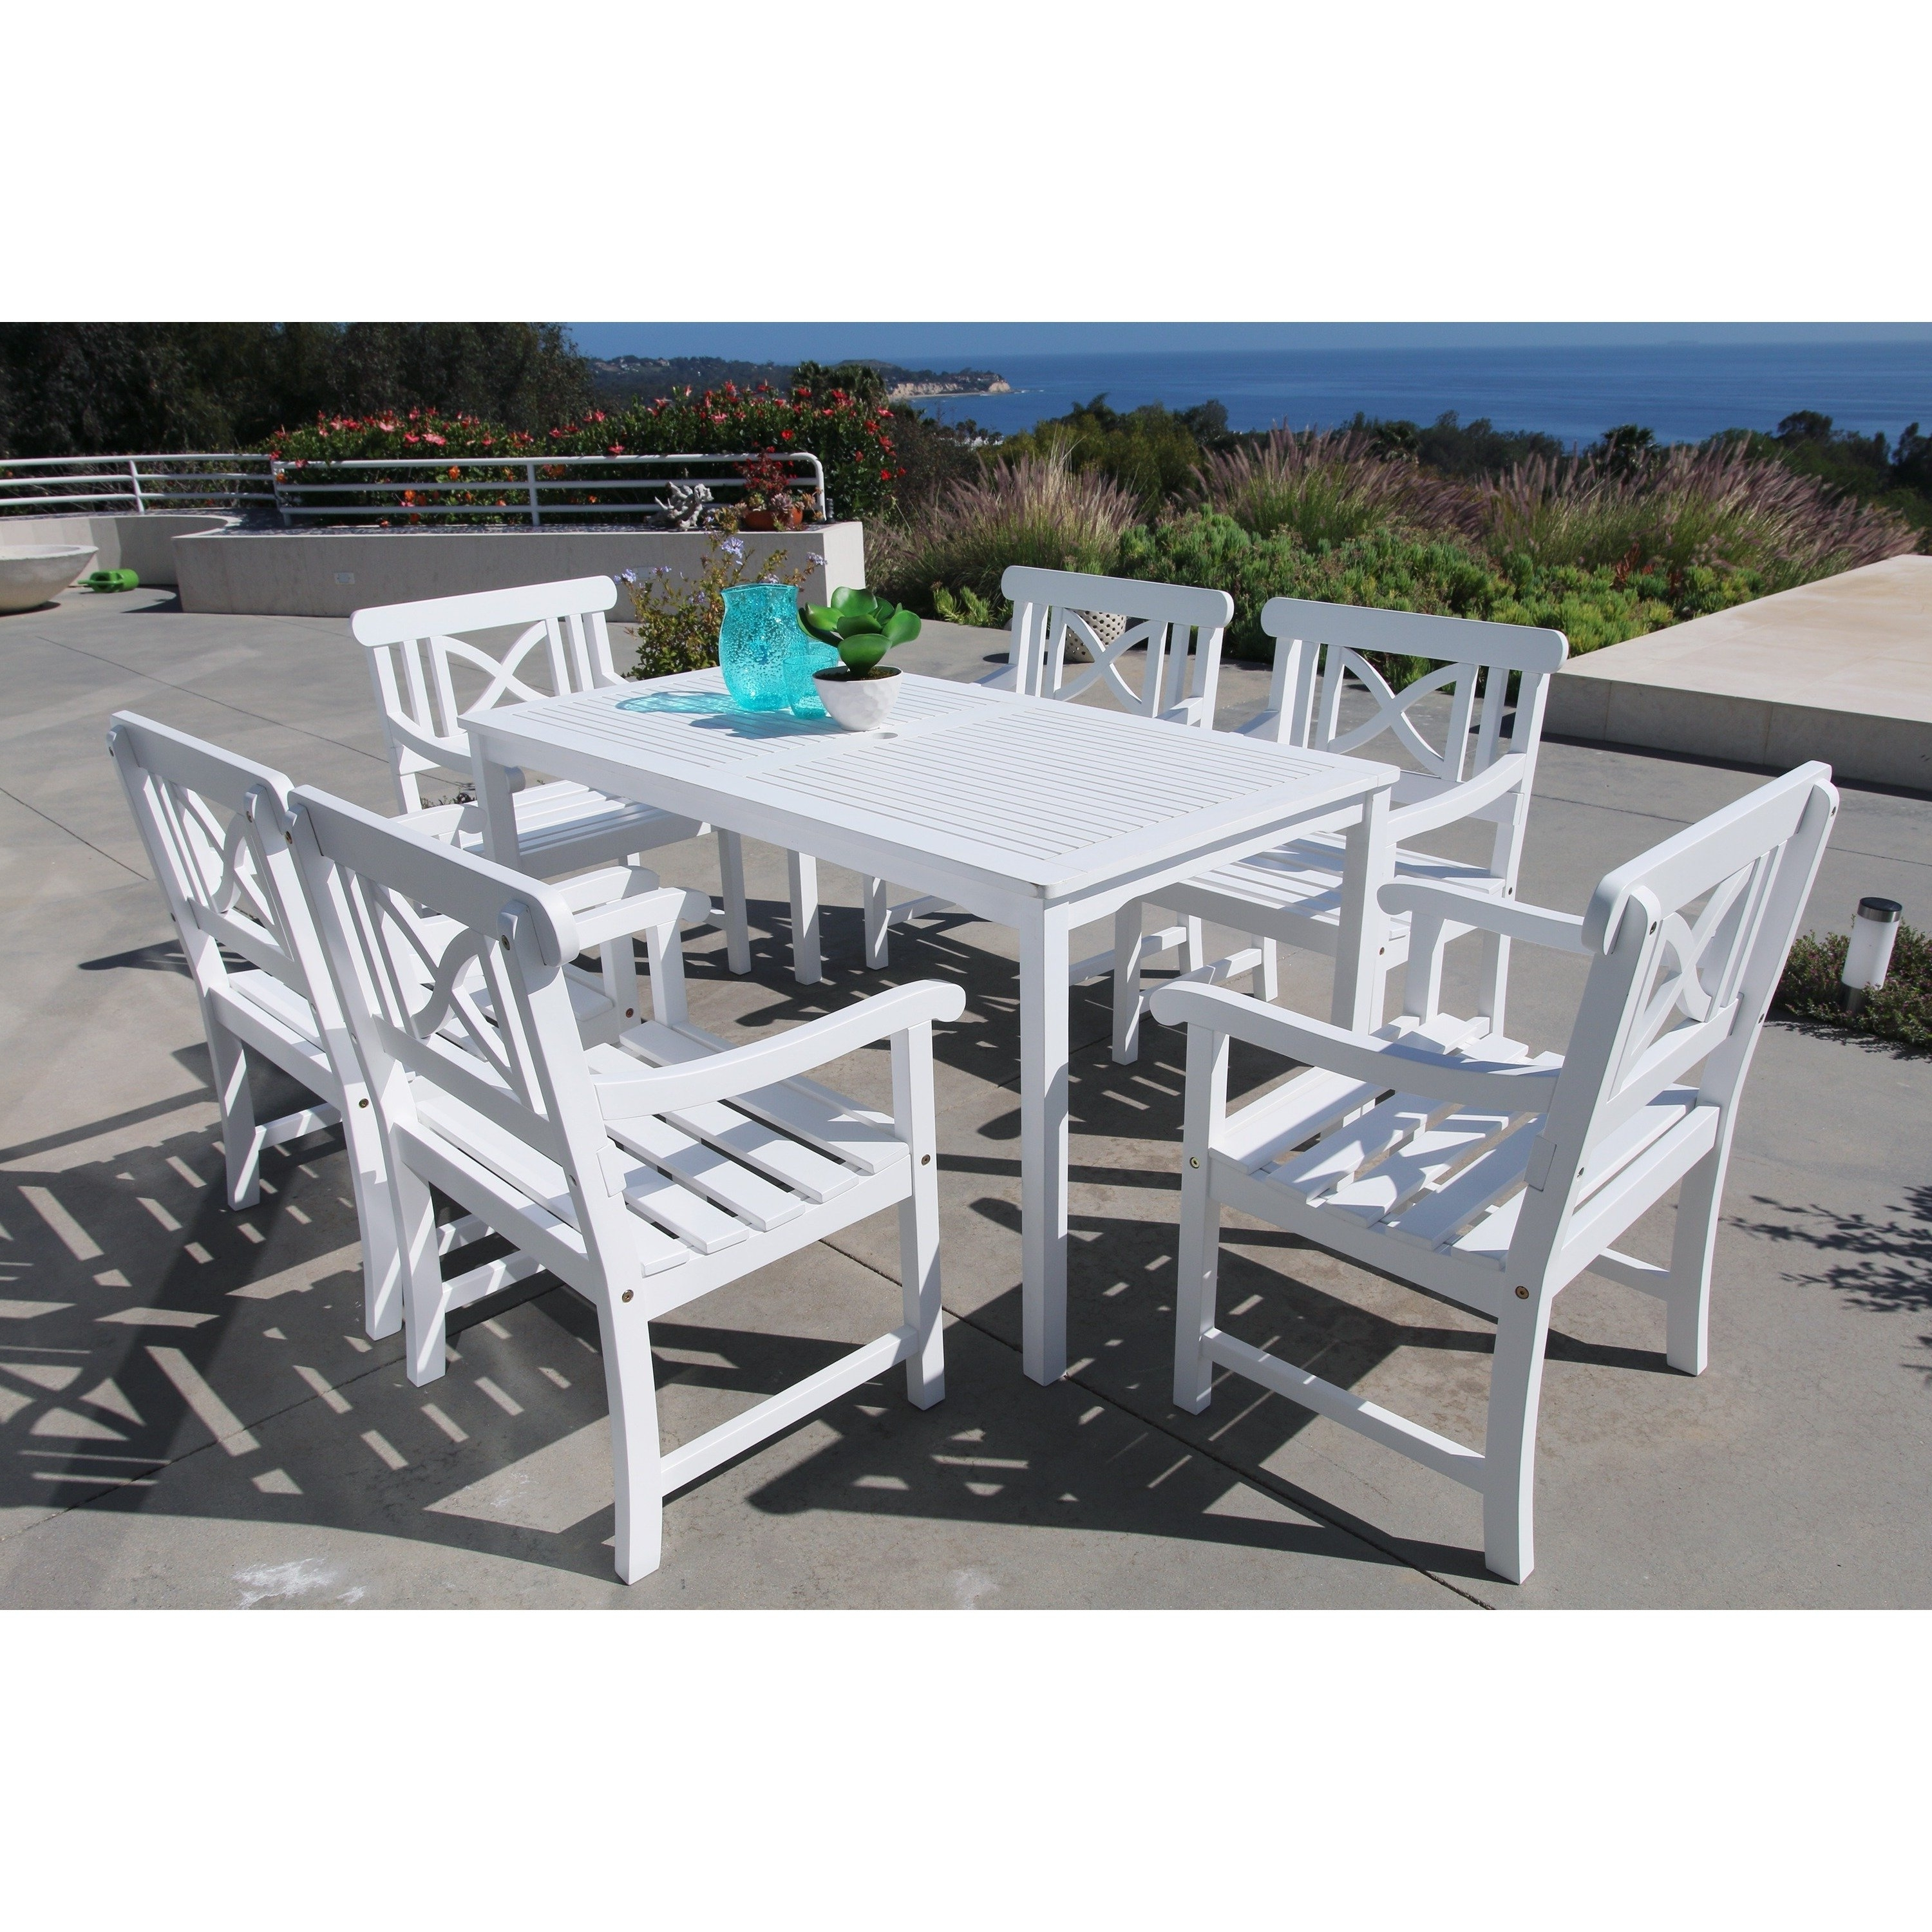 Preferred Candice Ii 7 Piece Extension Rectangular Dining Sets With Uph Side Chairs Throughout Shop The Gray Barn Bluebird 7 Piece Table And Arm Chair Outdoor (View 16 of 25)